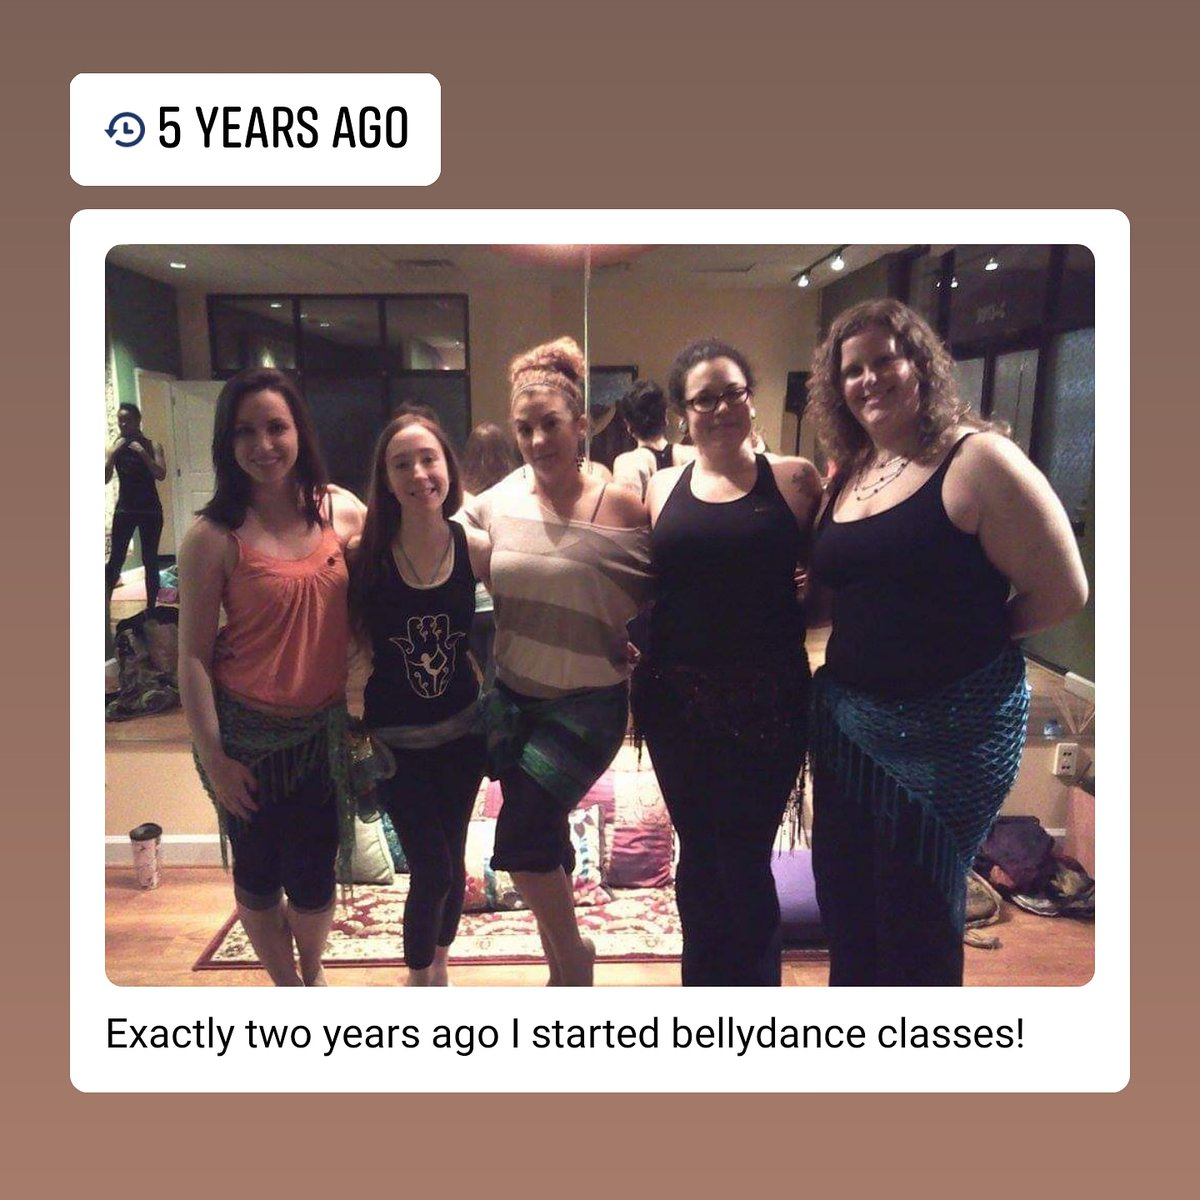 It's my 7 year bellydance anniversary today! pic.twitter.com/oNGSNM6EaU